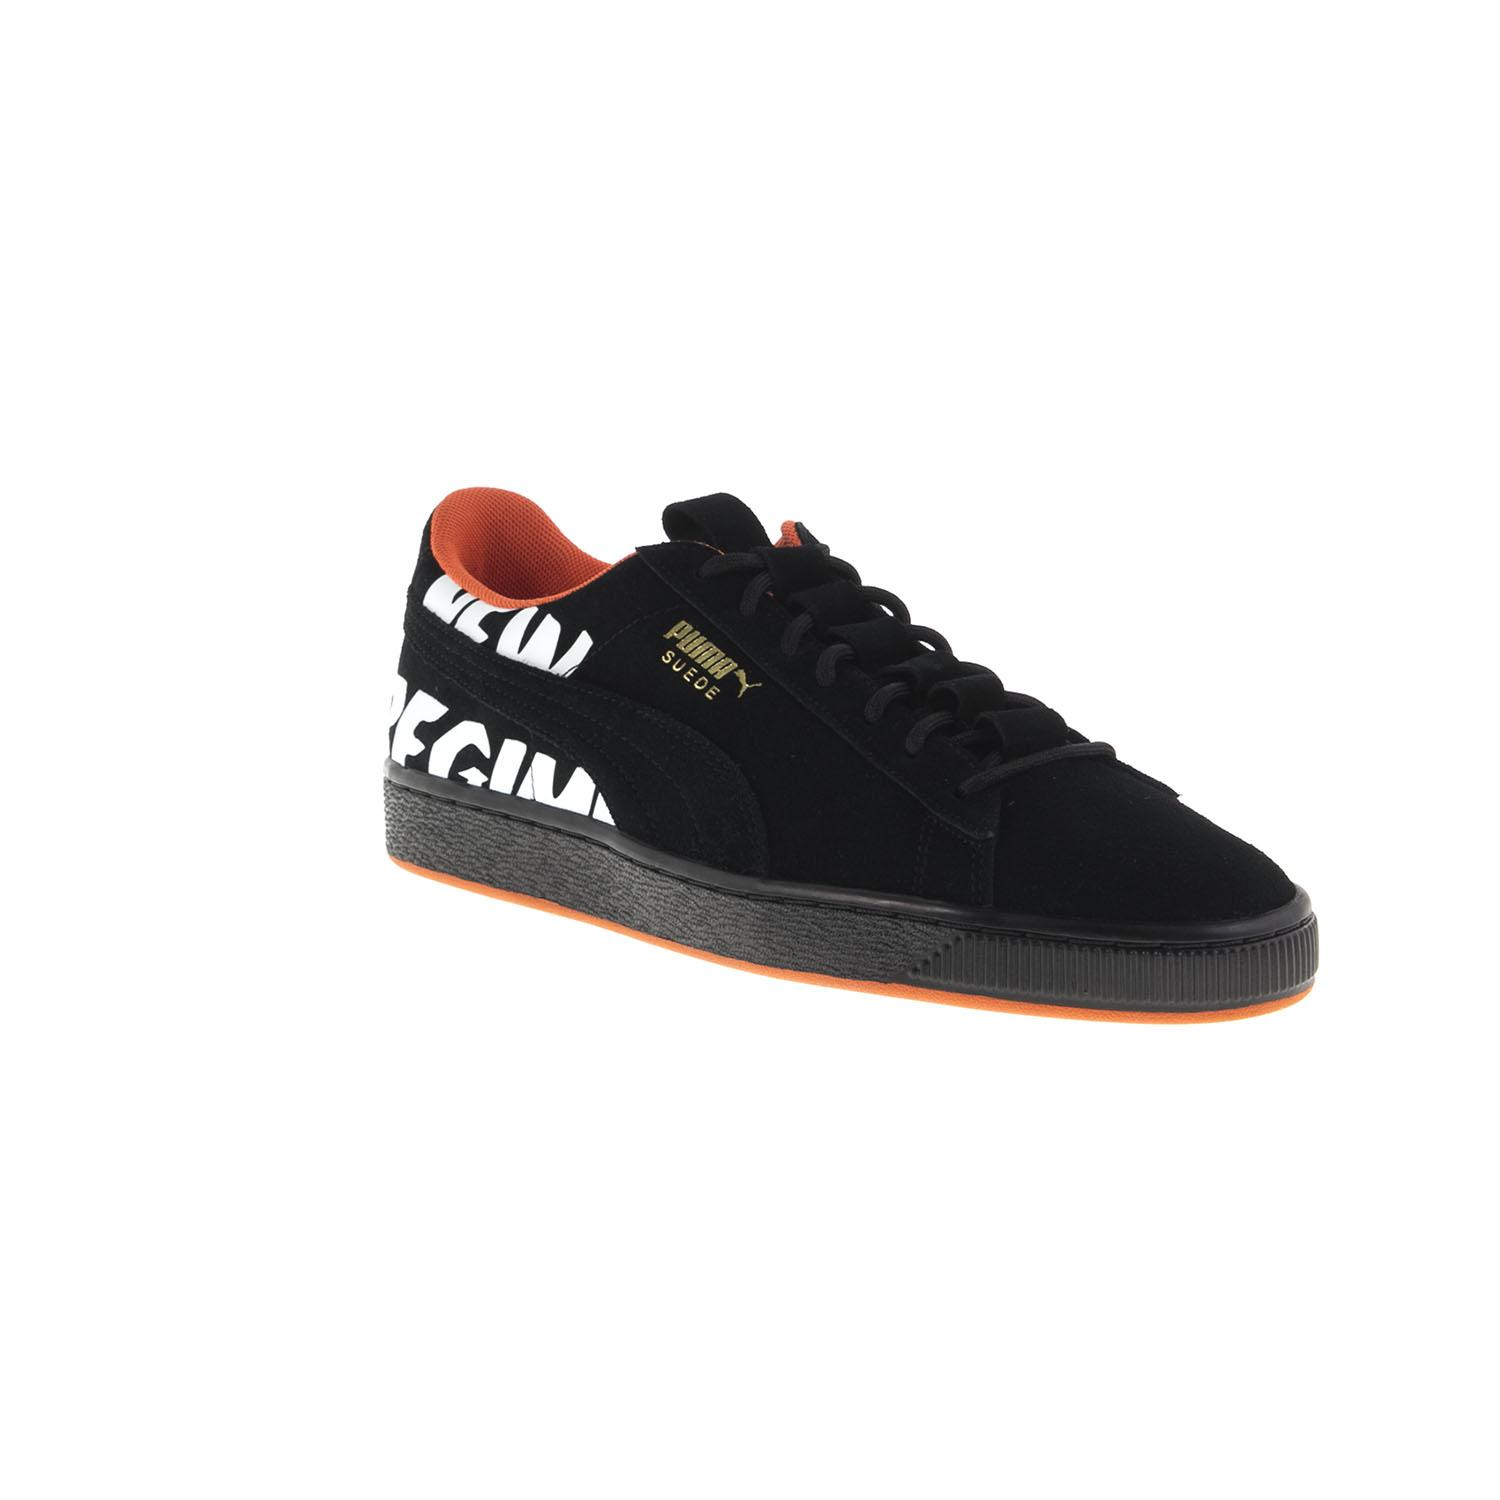 factory authentic d05bf 4012f Puma Suede Anr Trainers in Black for Men - Lyst